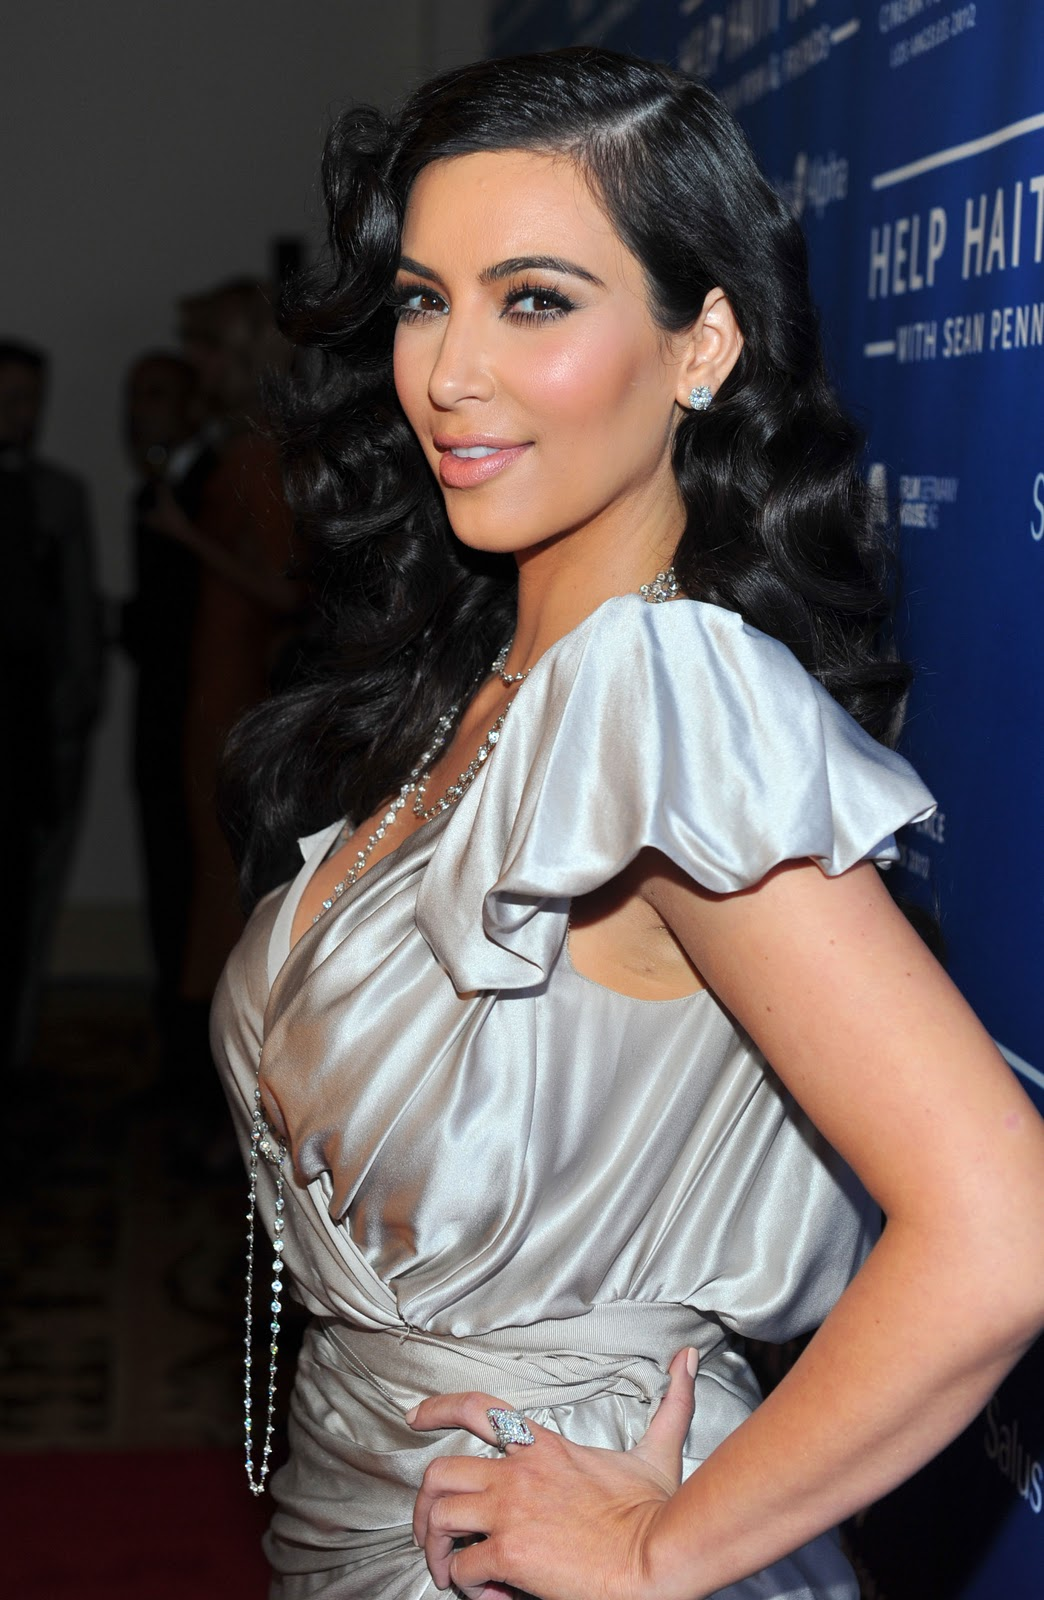 KIM-KARDASHIAN-DRESS-FASHION-SHOW-2012-2